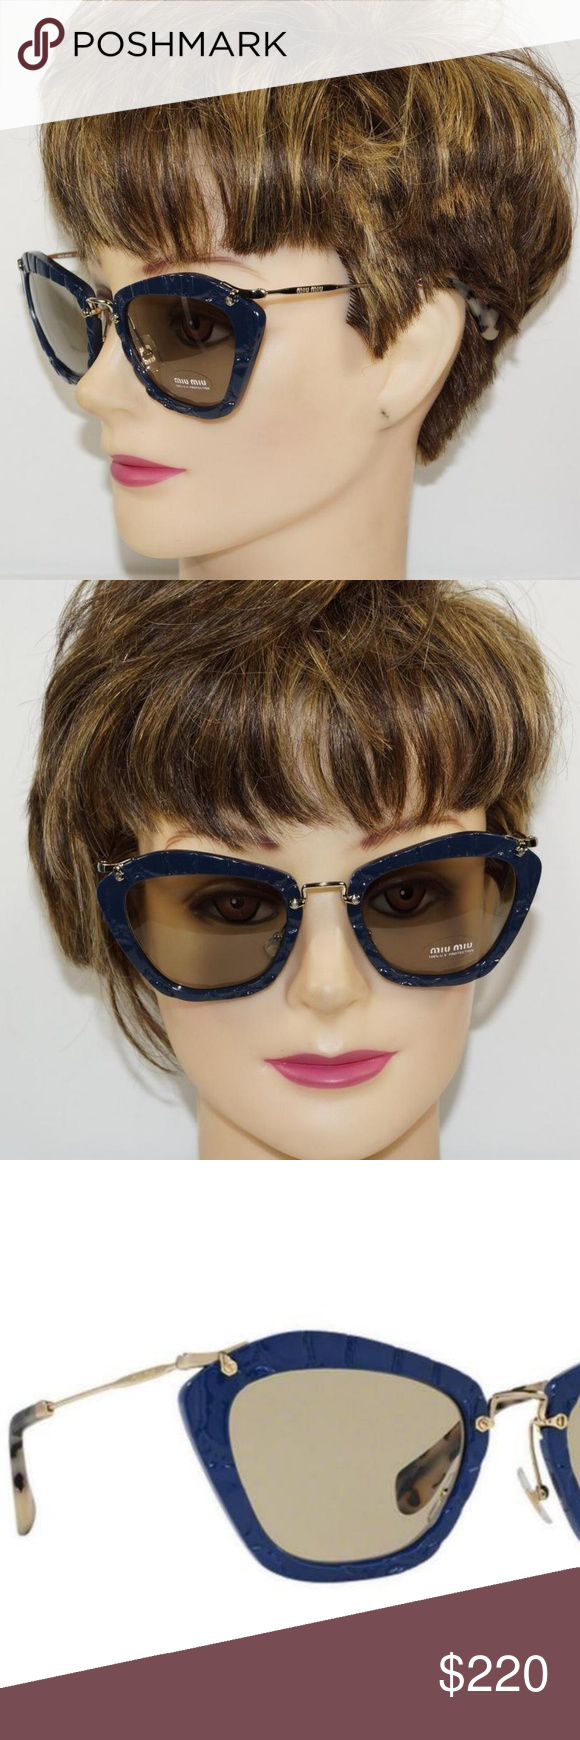 3b8a89224274 Miu Miu Cat Eye Blue Gold Sunglasses SMU 10N Brand New 100% Authentic MIU  MIU SUNGLASSES - BEAUTIFUL! Model  Cat Eye SMU 10N Color  Blue USZ-5J2  Lenses  ...